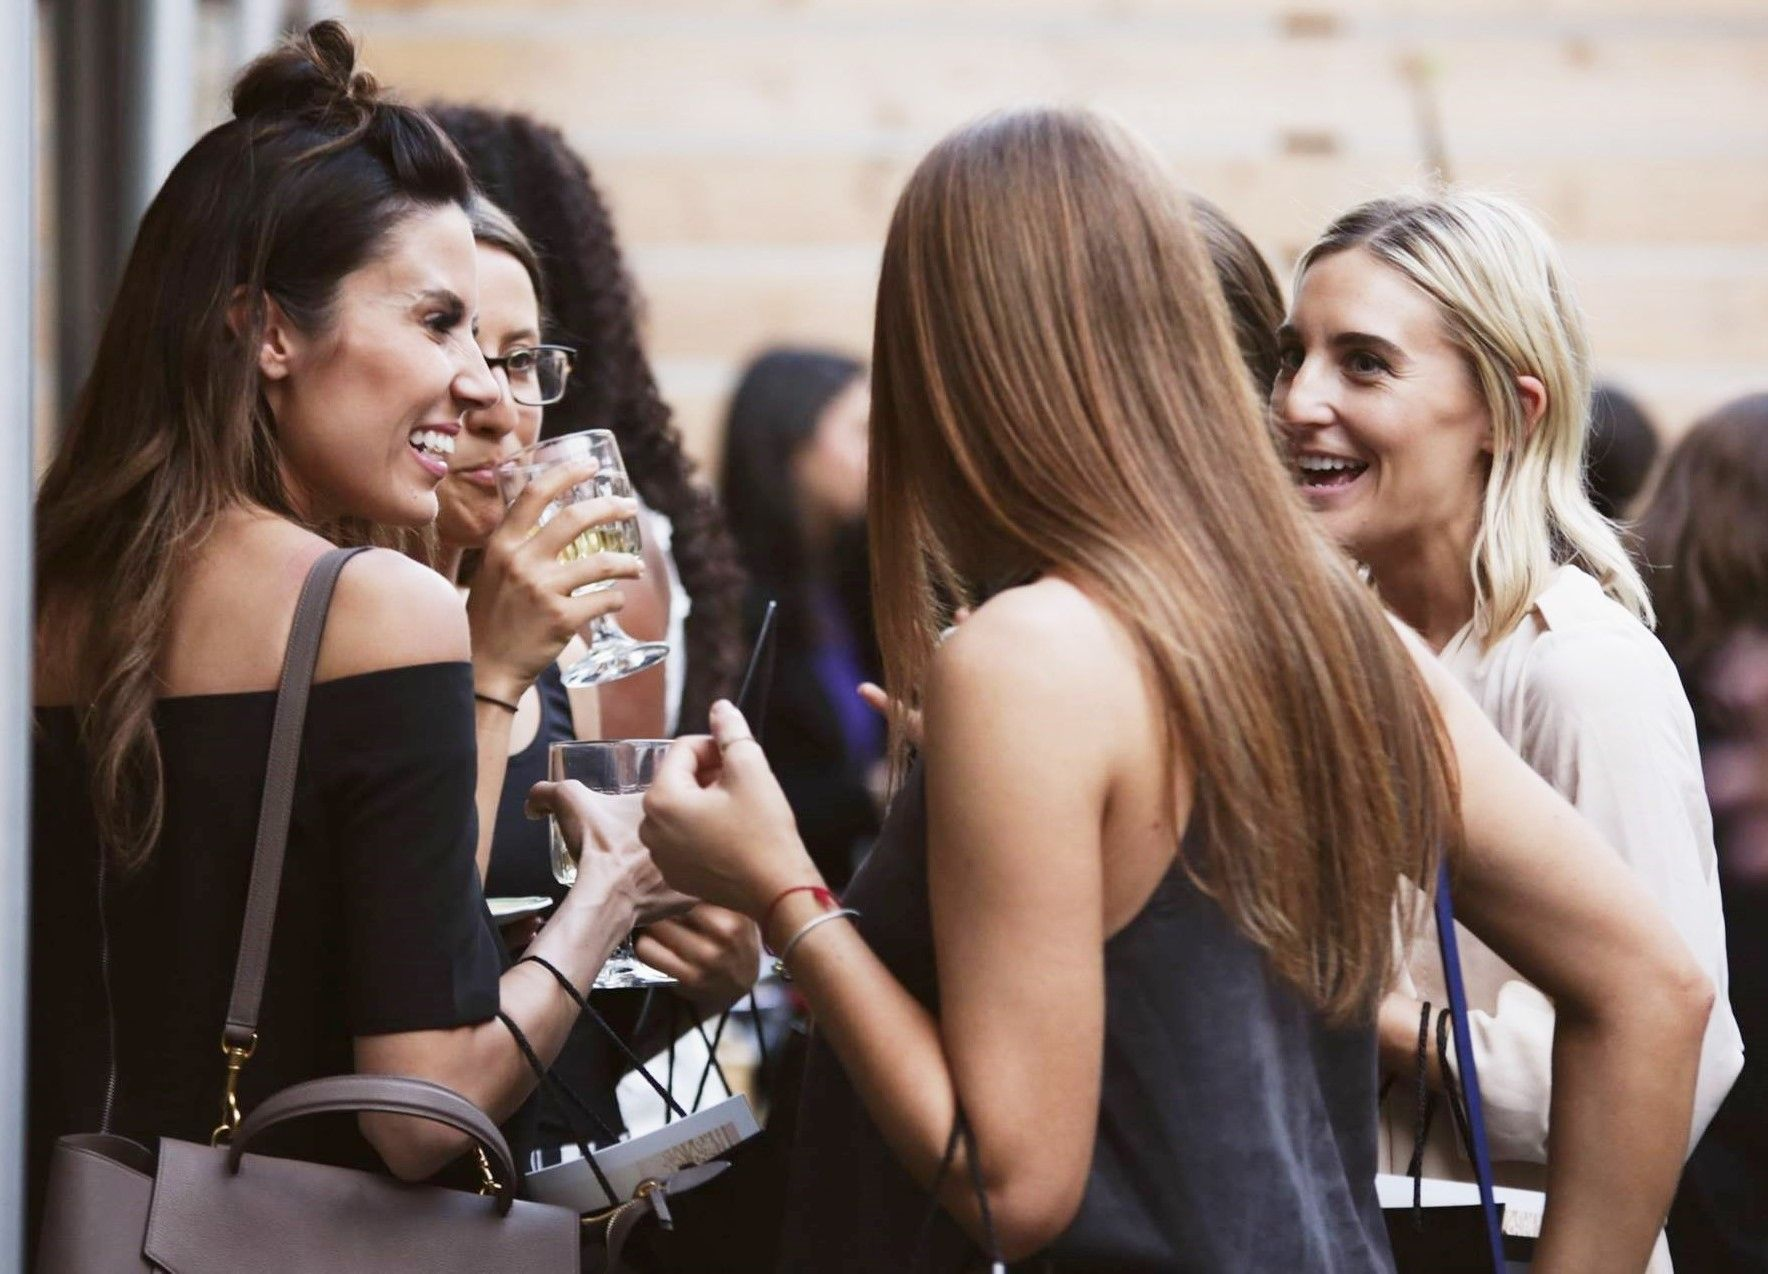 5 Conversation Starters To Take Networking To The Next